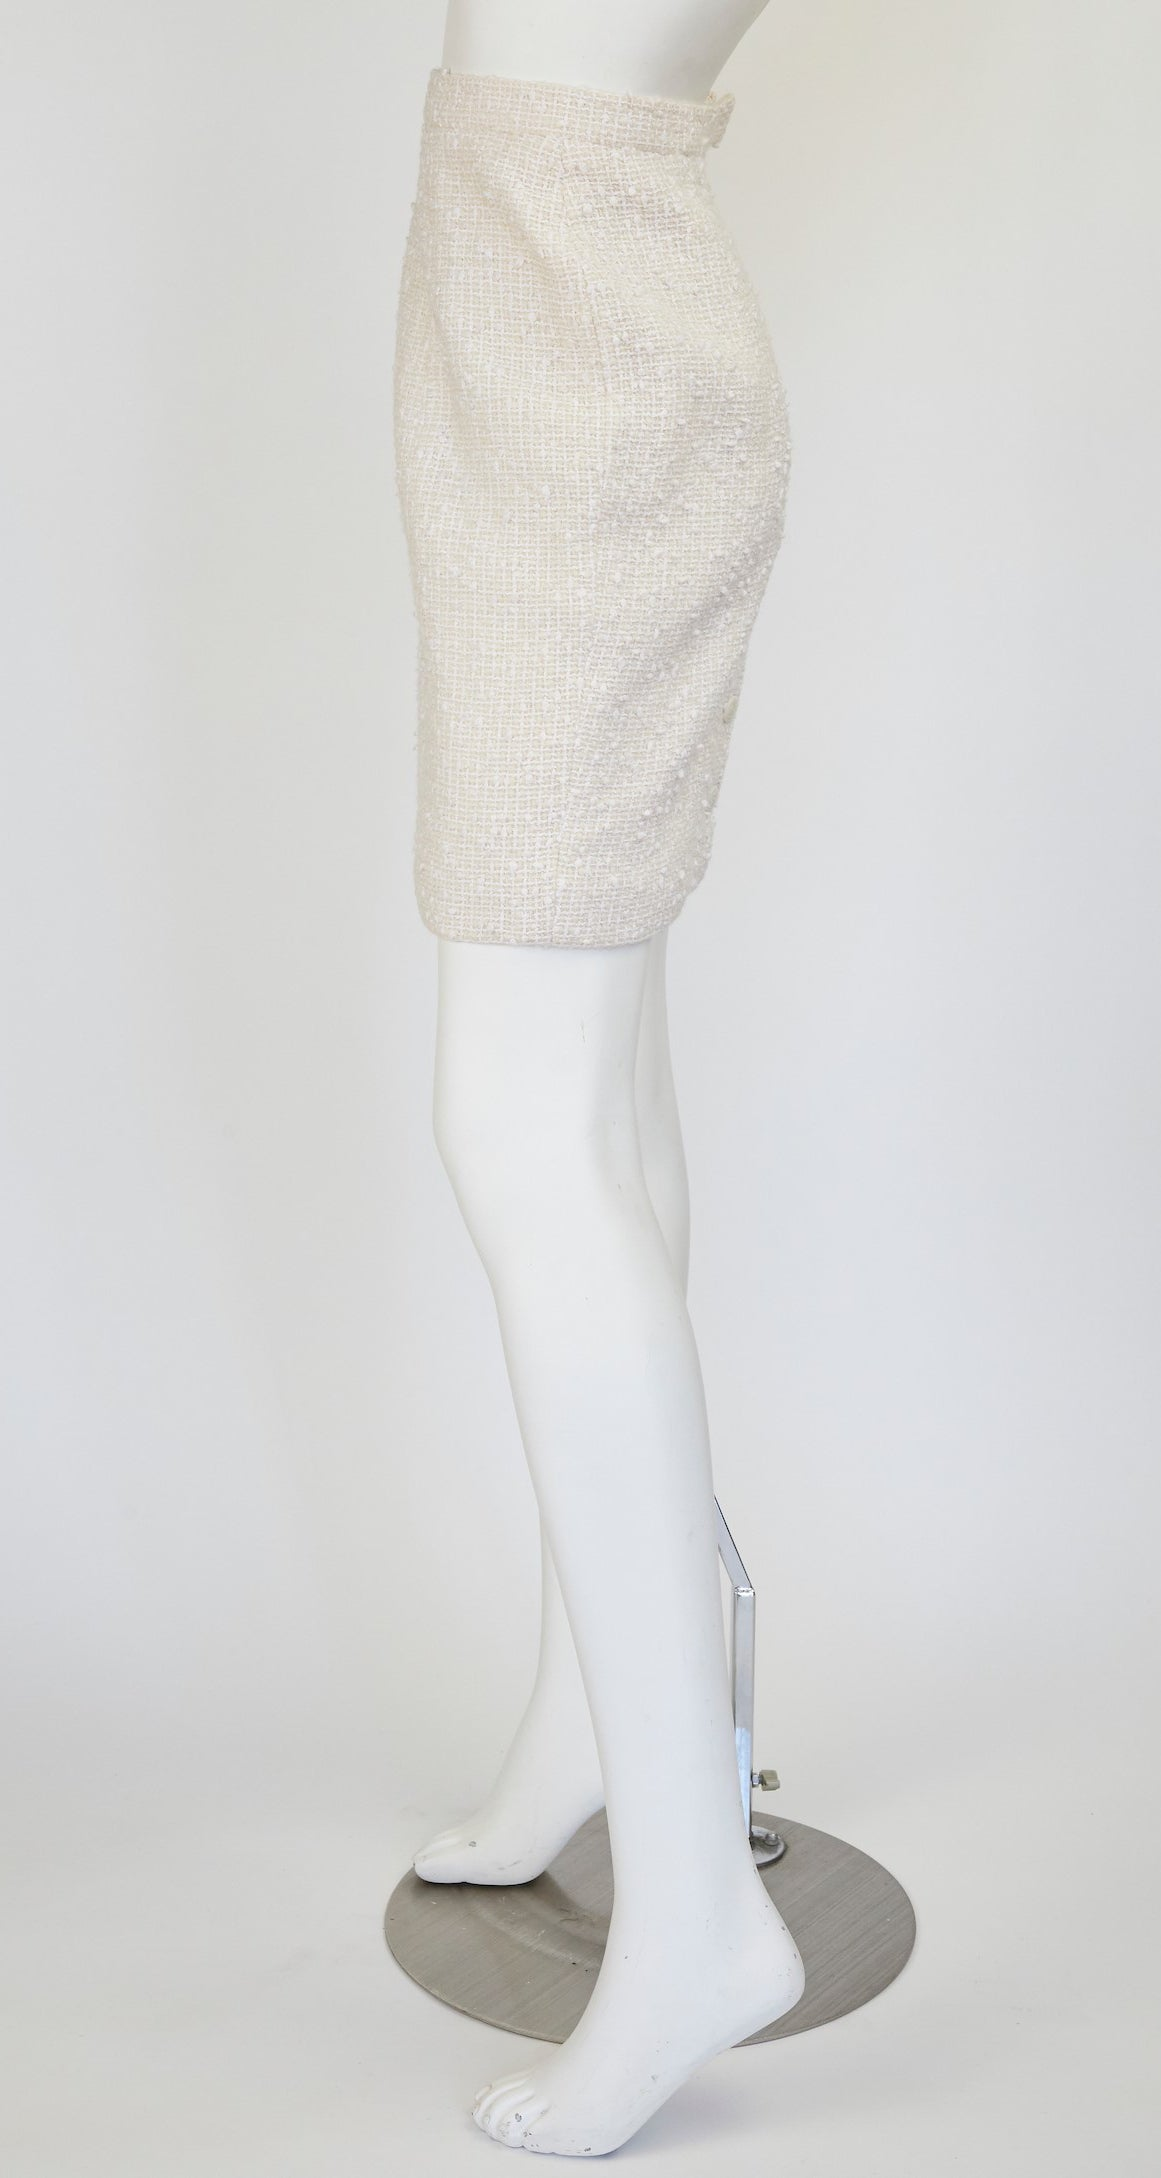 1996 Cruise Cream Bouclé High-Waisted Mini Skirt